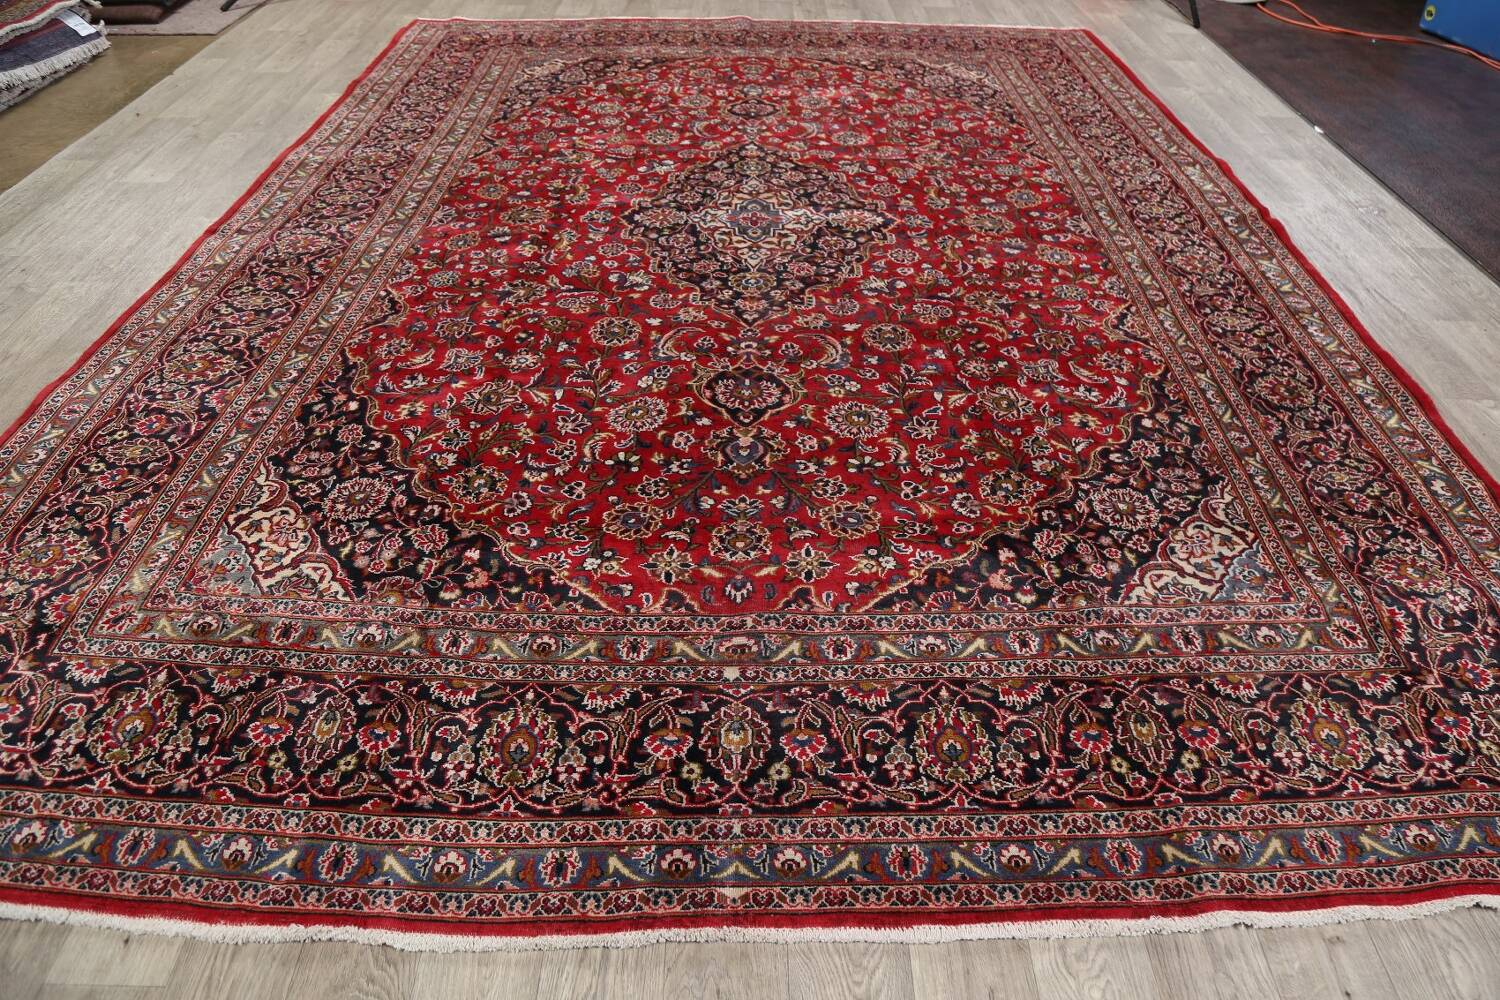 Vintage Floral Mashad Persian Red Area Rug 9x13 image 18